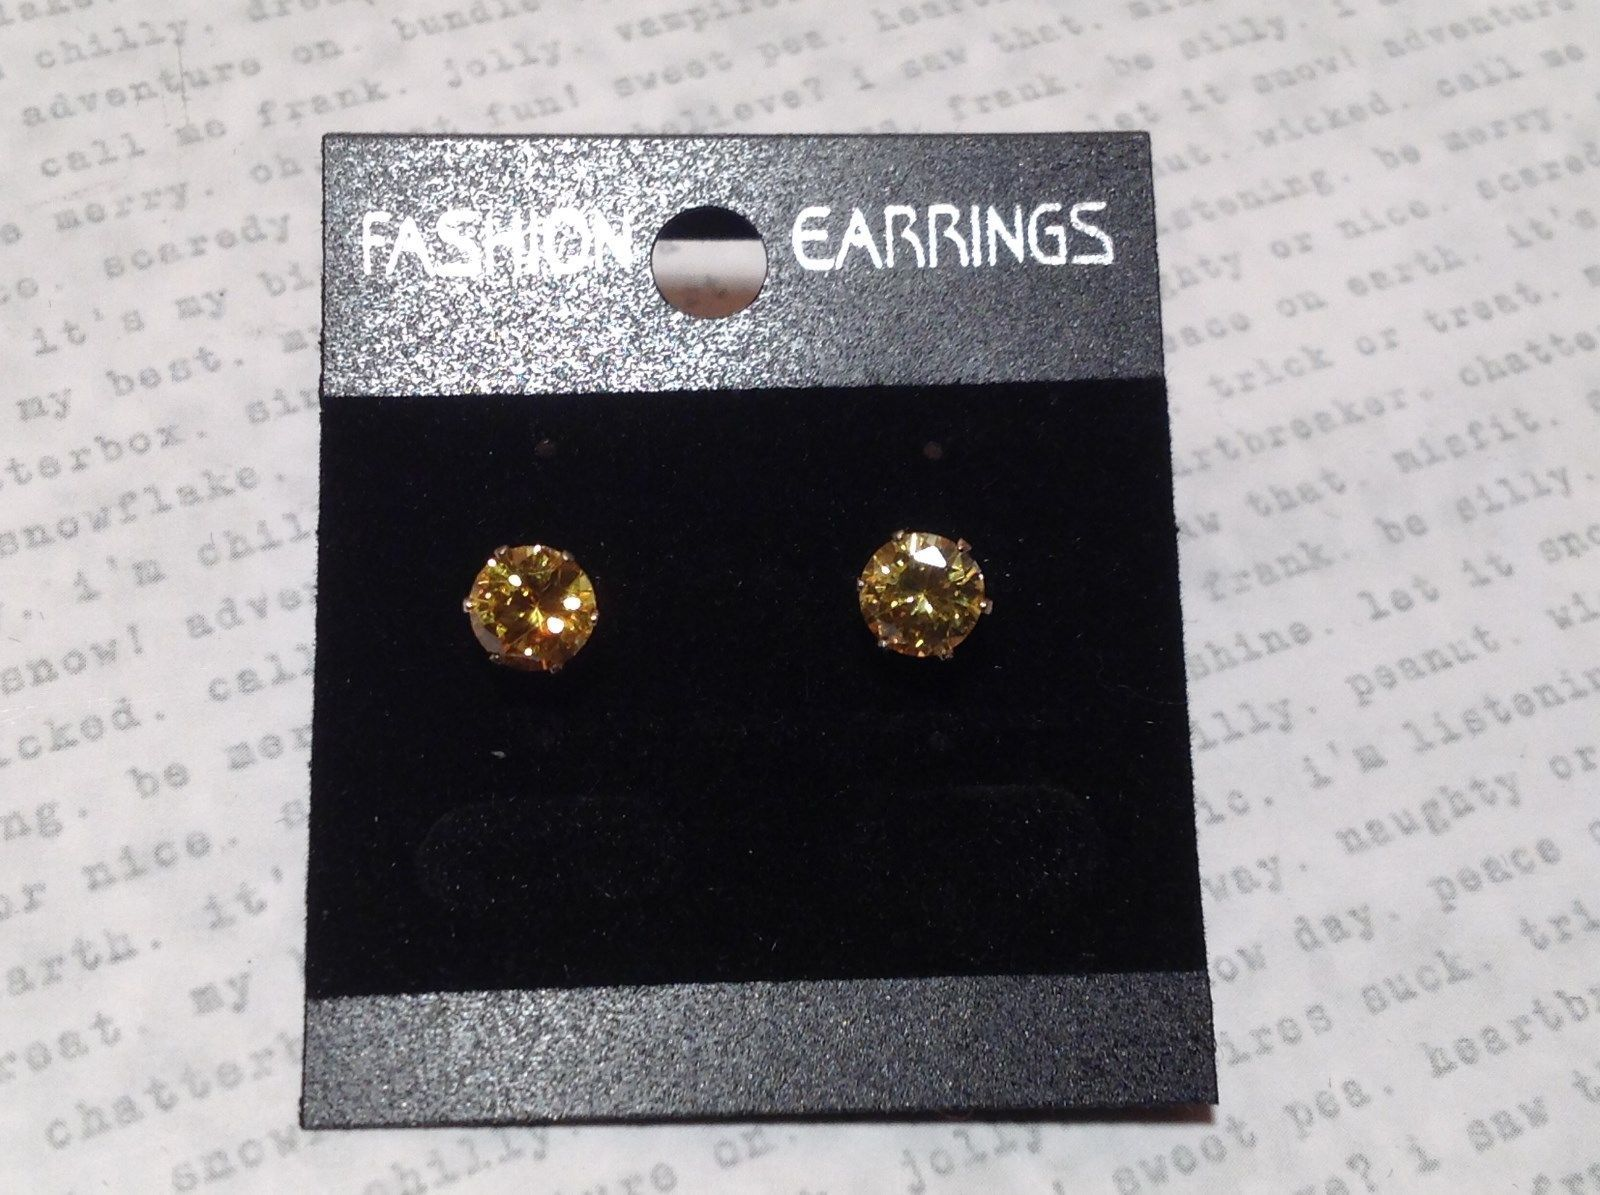 Beautiful Round Yellow CZ Stone Silver Tone Stud Earrings